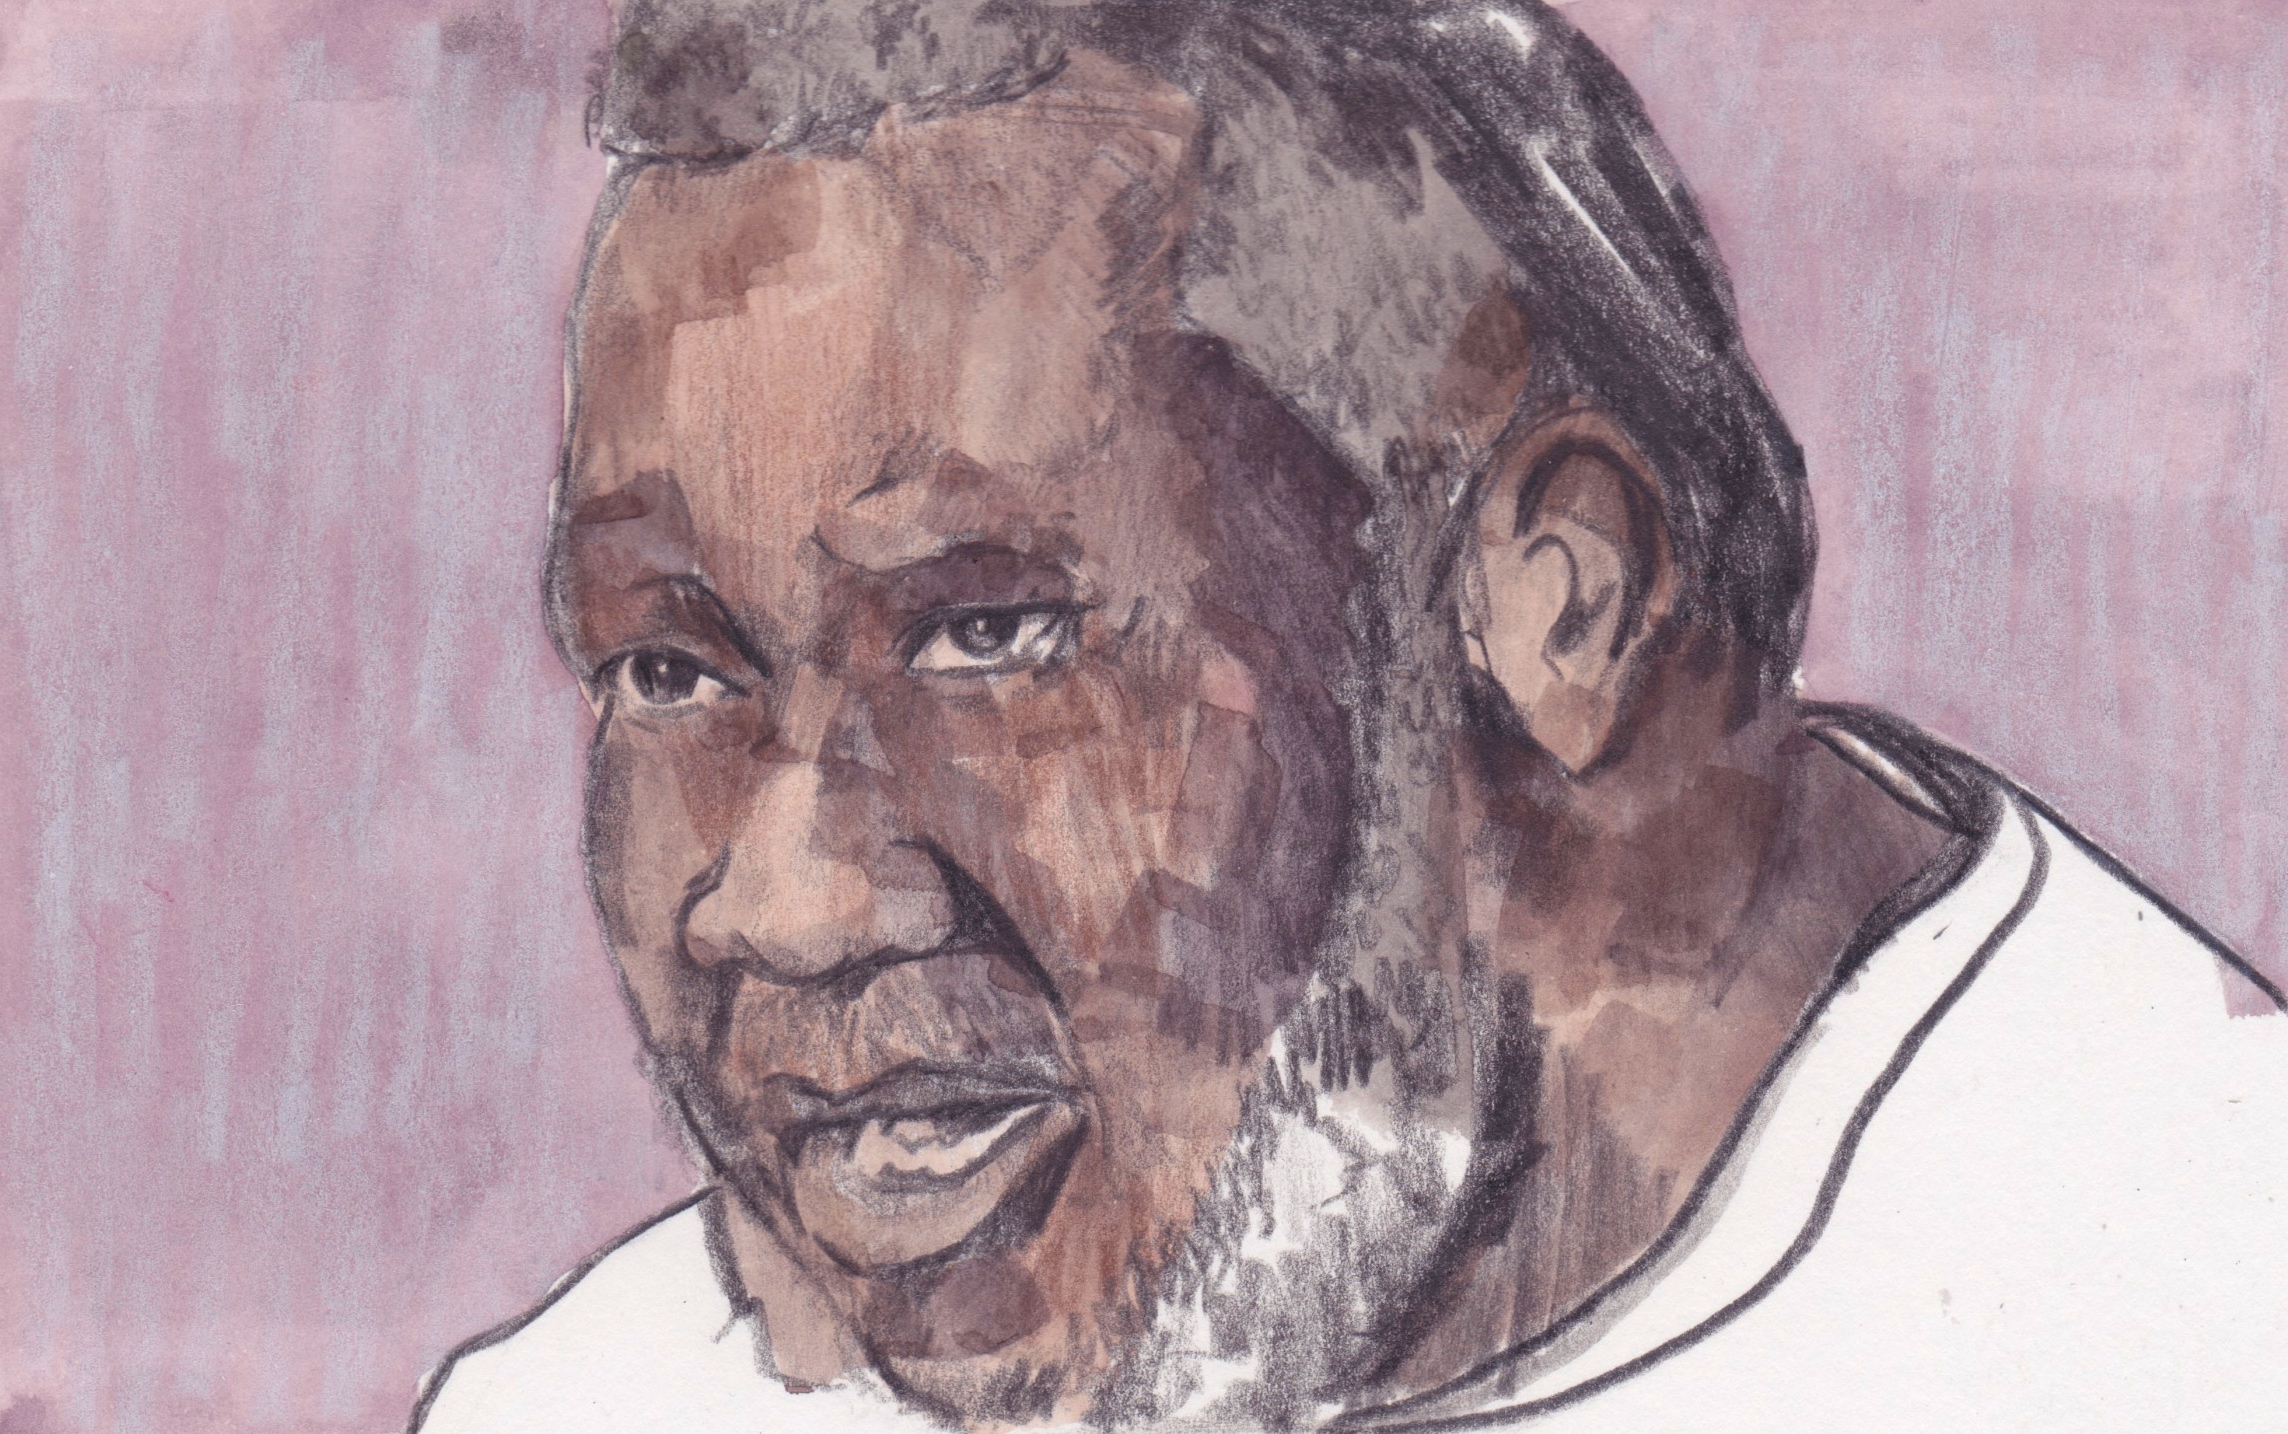 02/06/15 Malik Agar, the head of the Sudan People's Liberation Movement North, refused Omar Al-Bashir's invitation for peace talks. Agar insists on three conditions - a ceasefire; open access to humanitarian aid; and guarantee of certain civil freedoms. Al-Bashir was inaugurated as President today after winning 94% of the vote